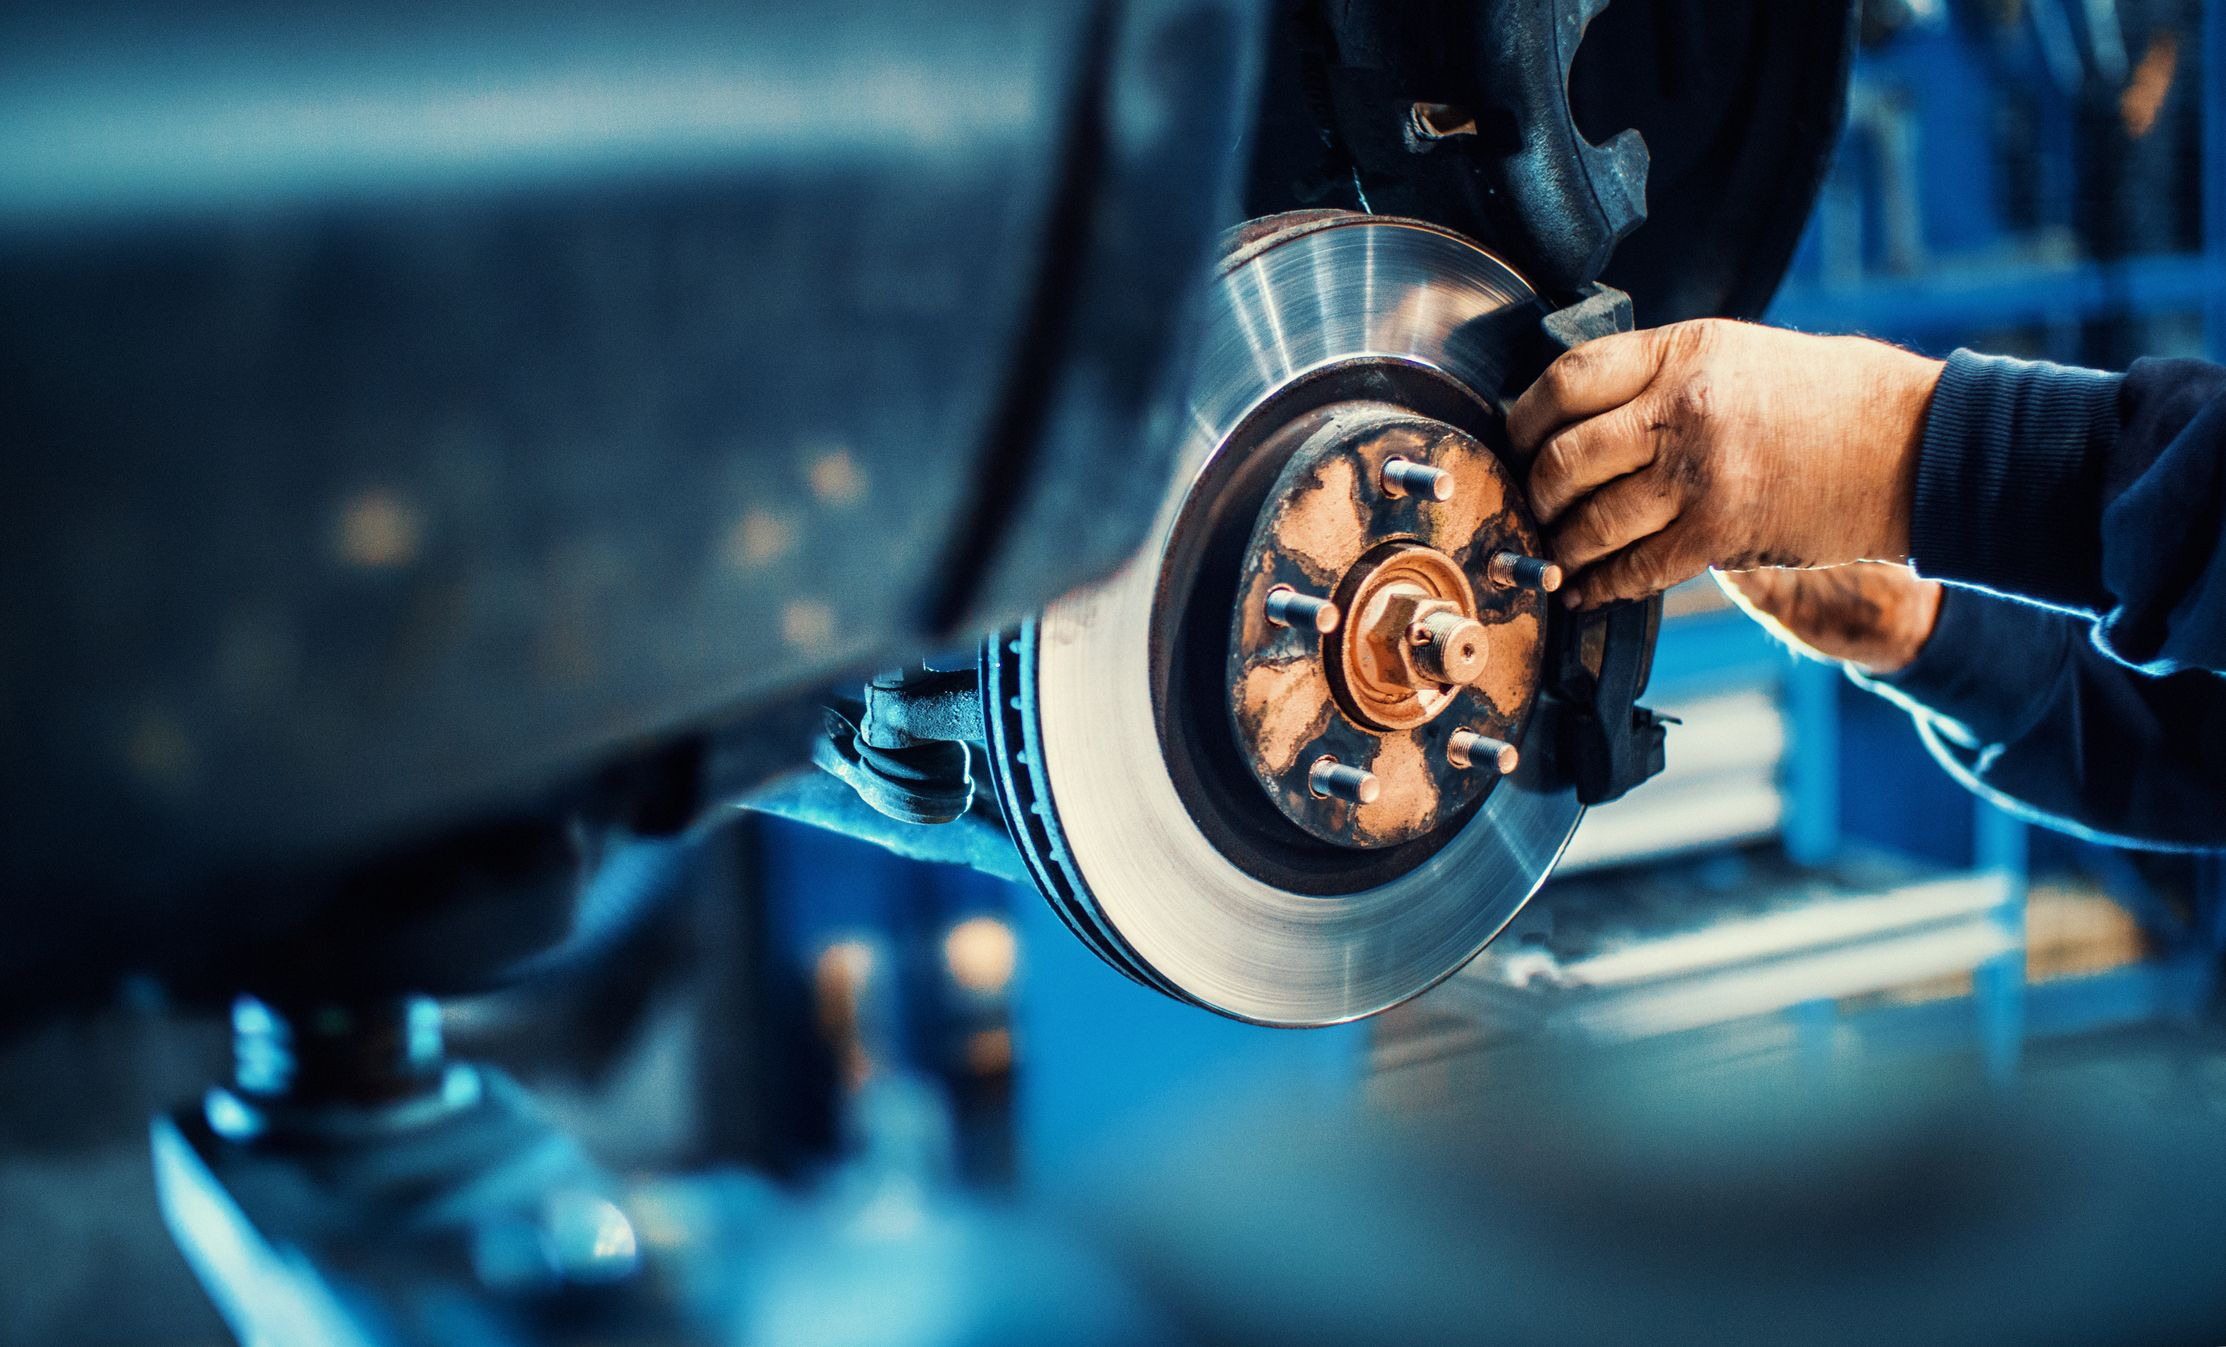 How To Change Brake Pads Easy Instructions For Replacing Brake Pads Rotors